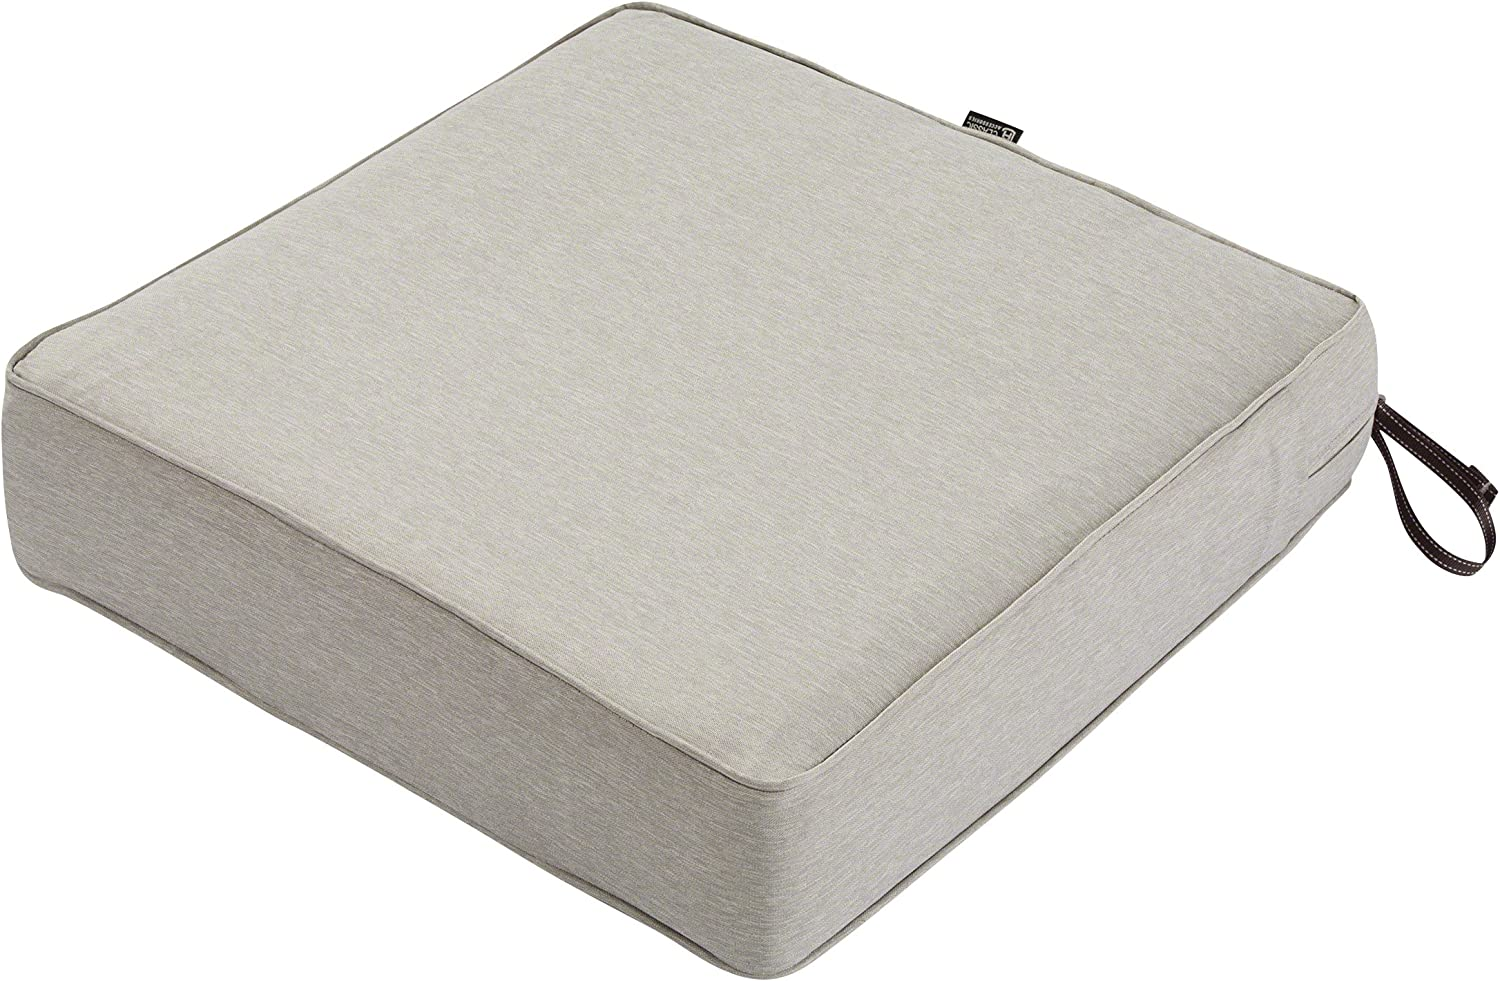 "Classic Accessories Montlake Seat Cushion Foam & Slip Cover, Heather Grey, 25x25x5"" Thick"